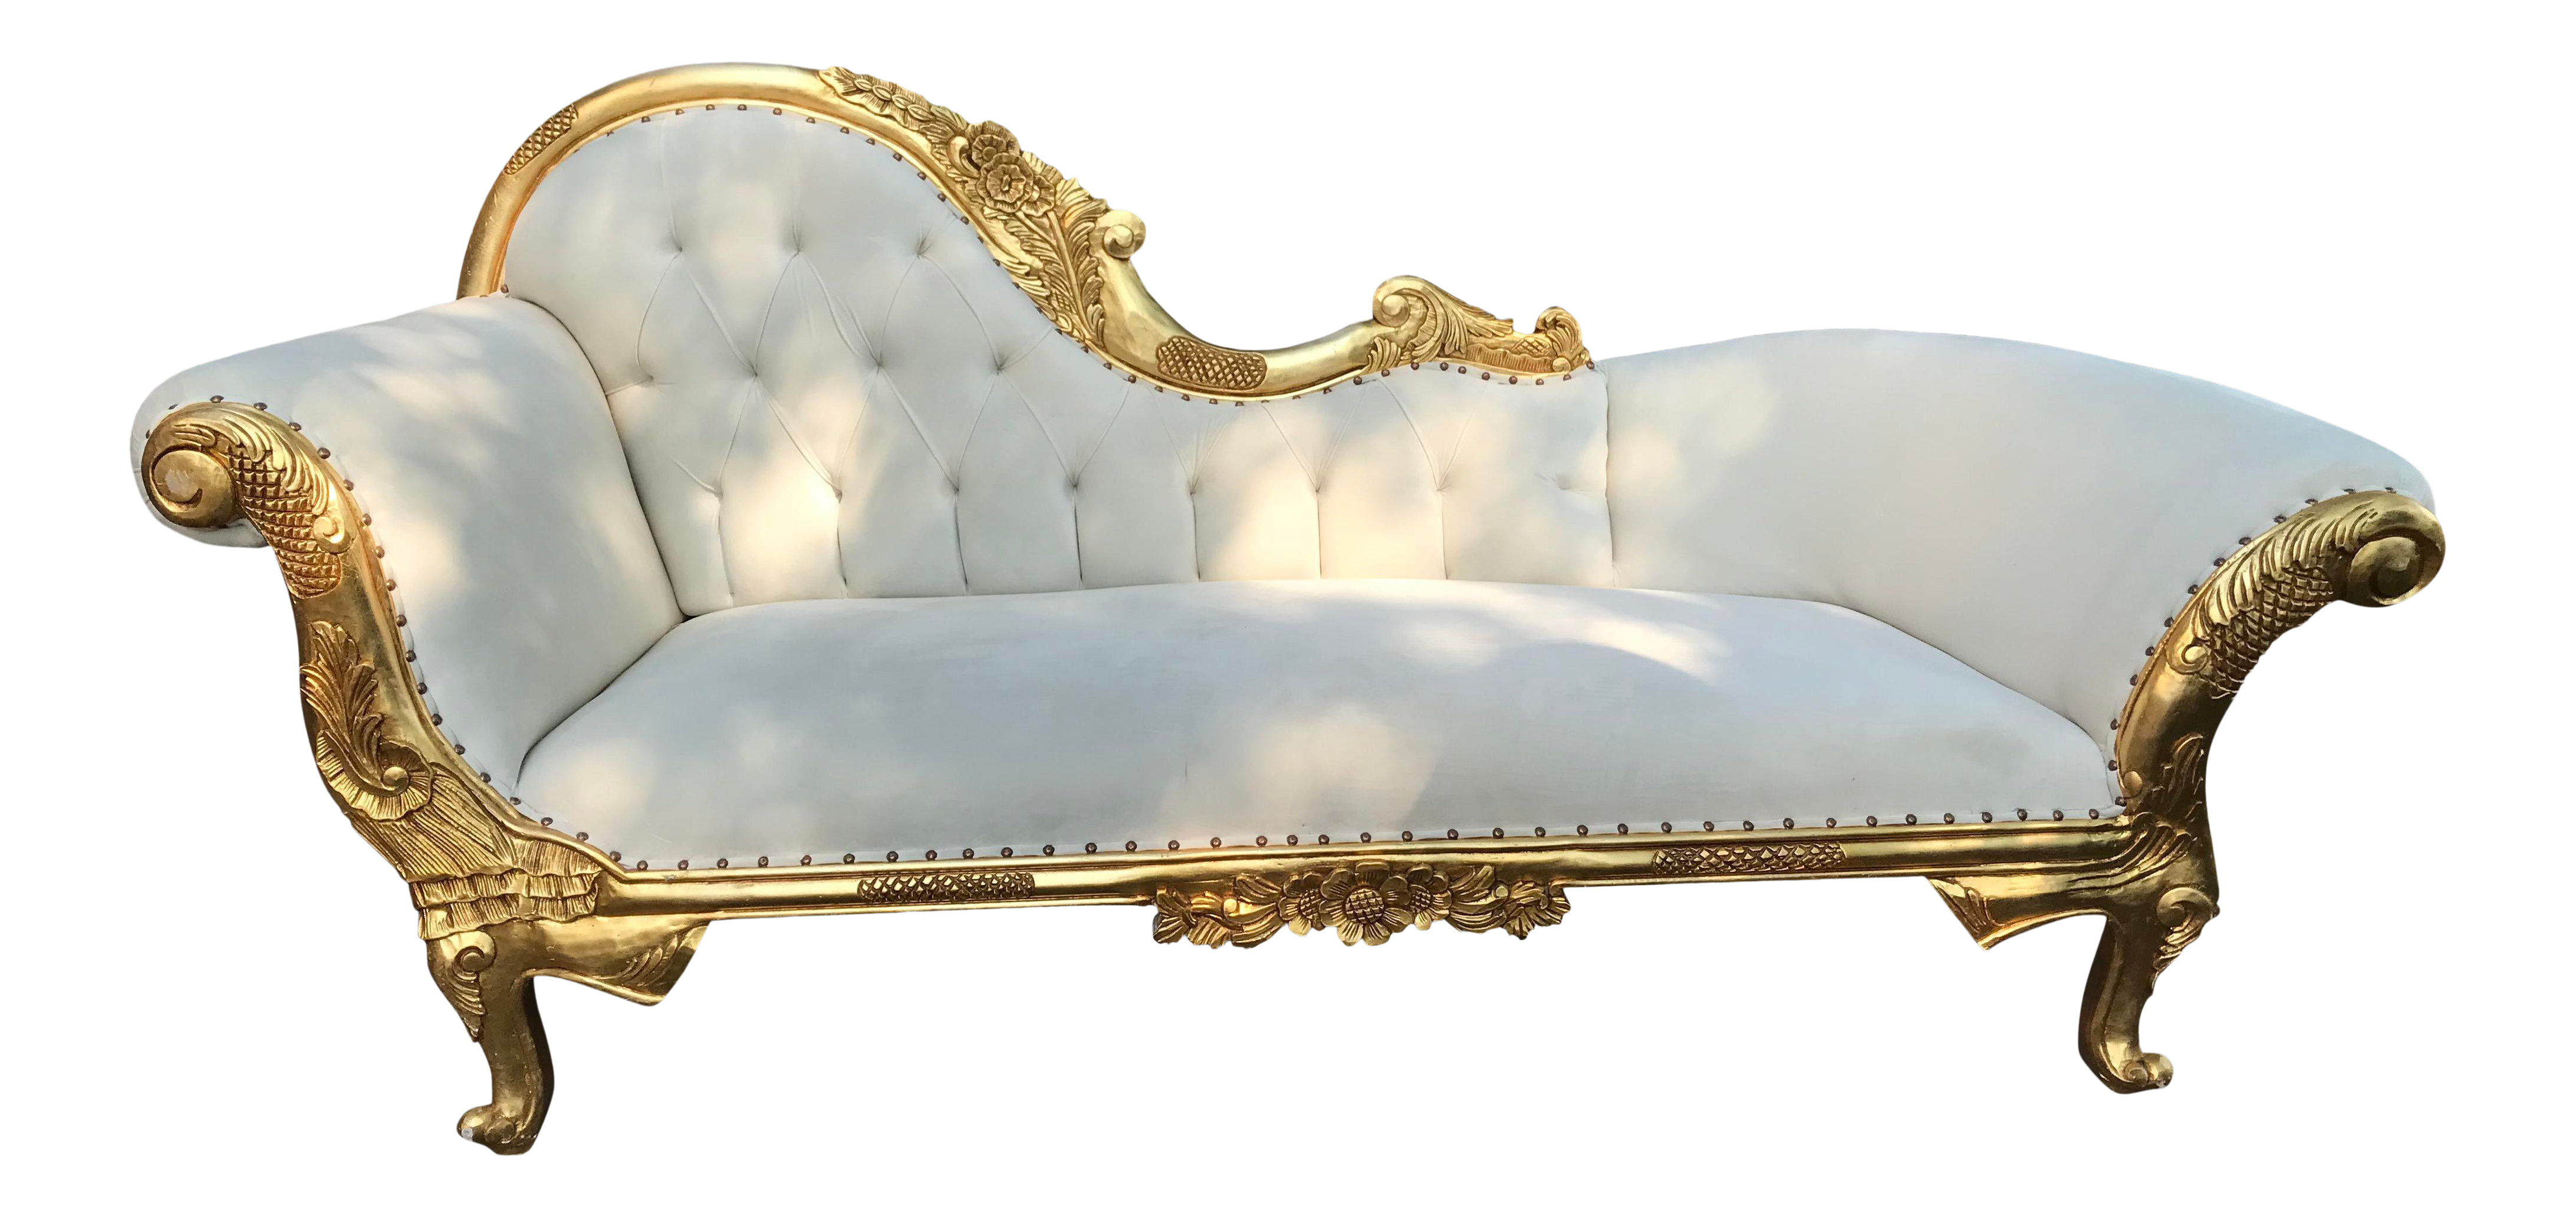 New French Louis Xvi Style Gold And White Upholstery Chaise Lounge Made To Order Chairish